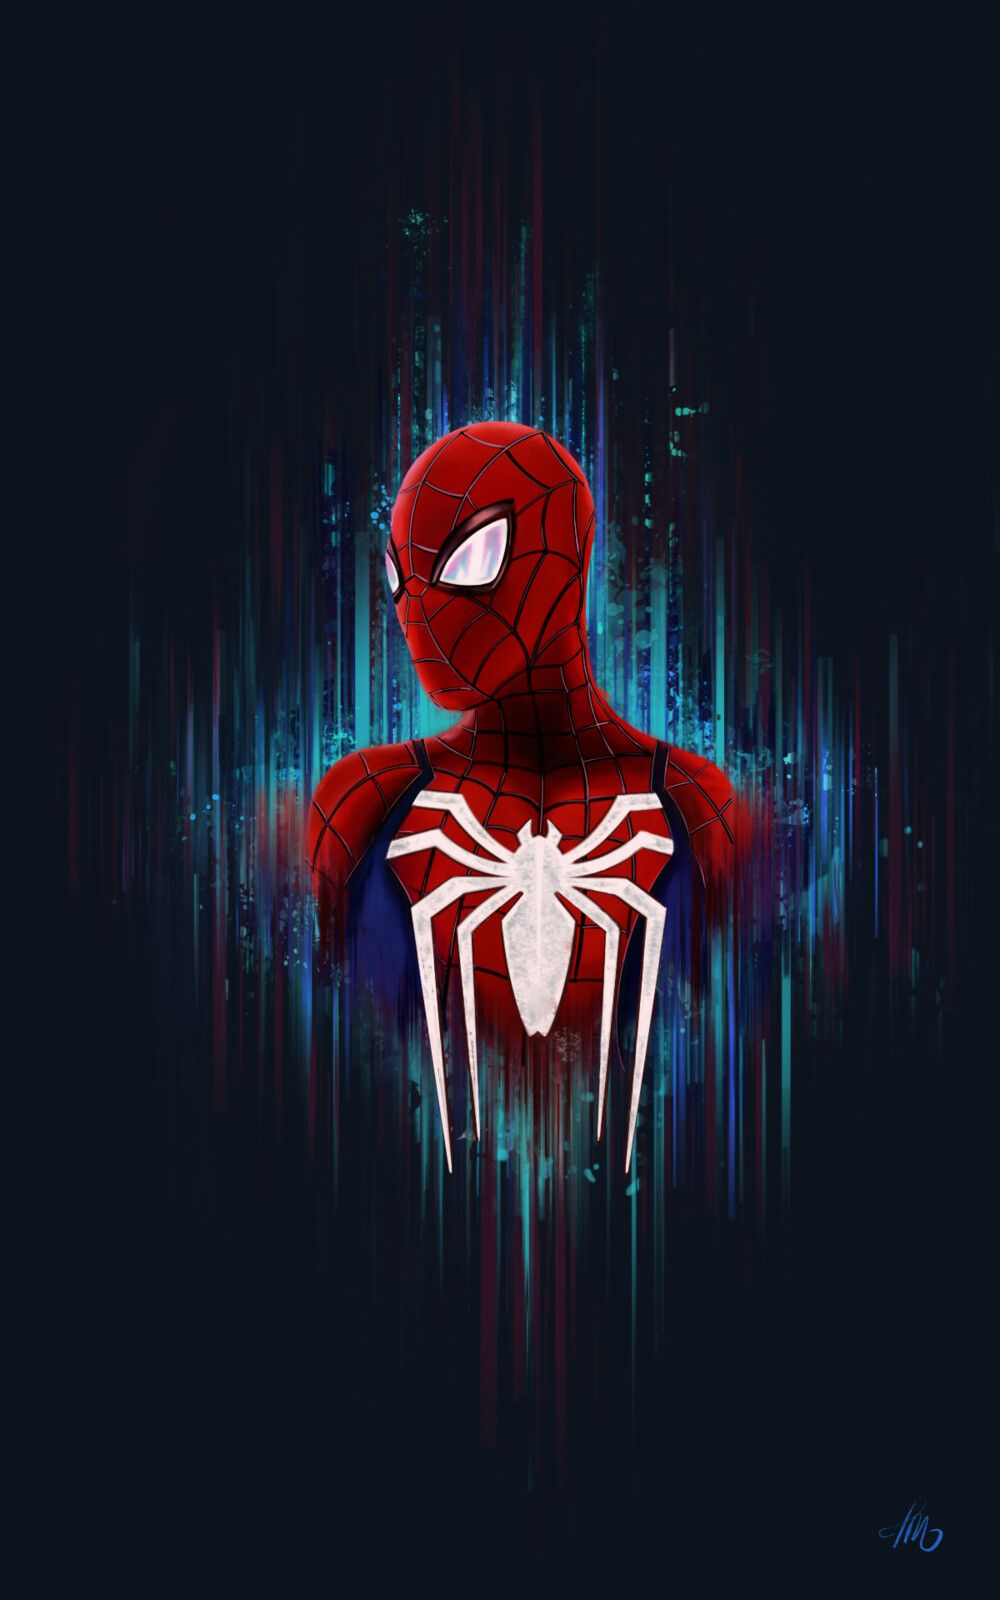 What Makes you Different Makes you Spider-Man, Taylor E. Mathias